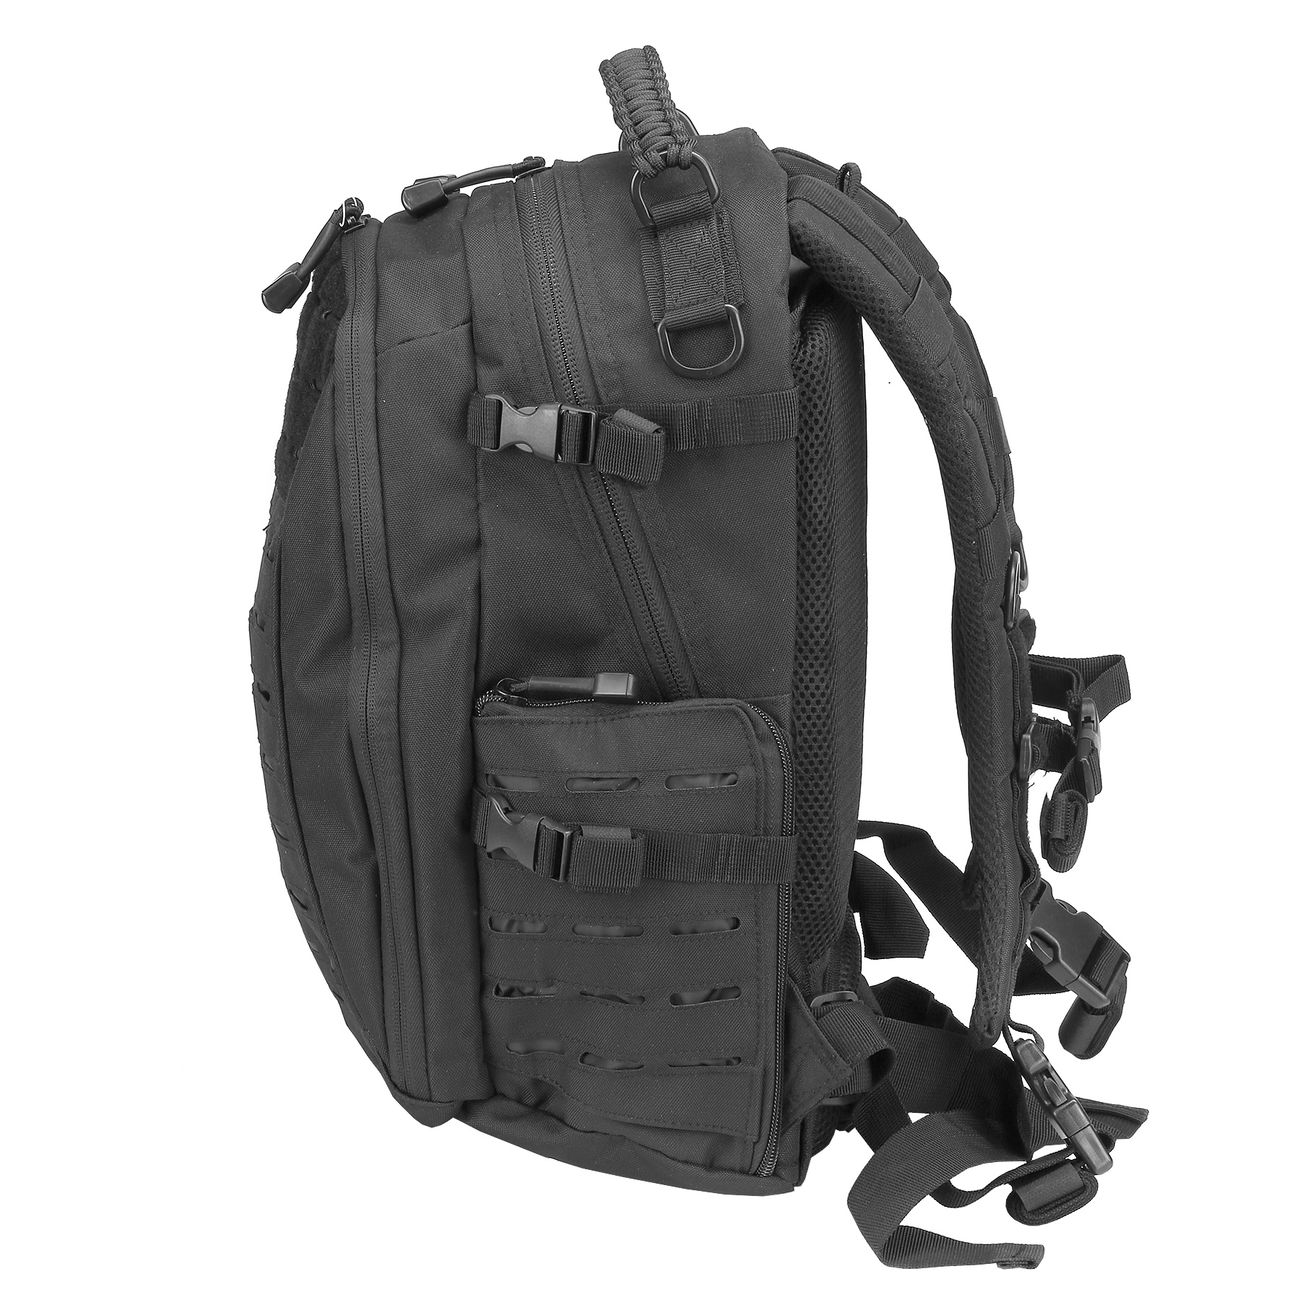 Mil-Tec Rucksack Mission Pack Laser Cut Small schwarz 4